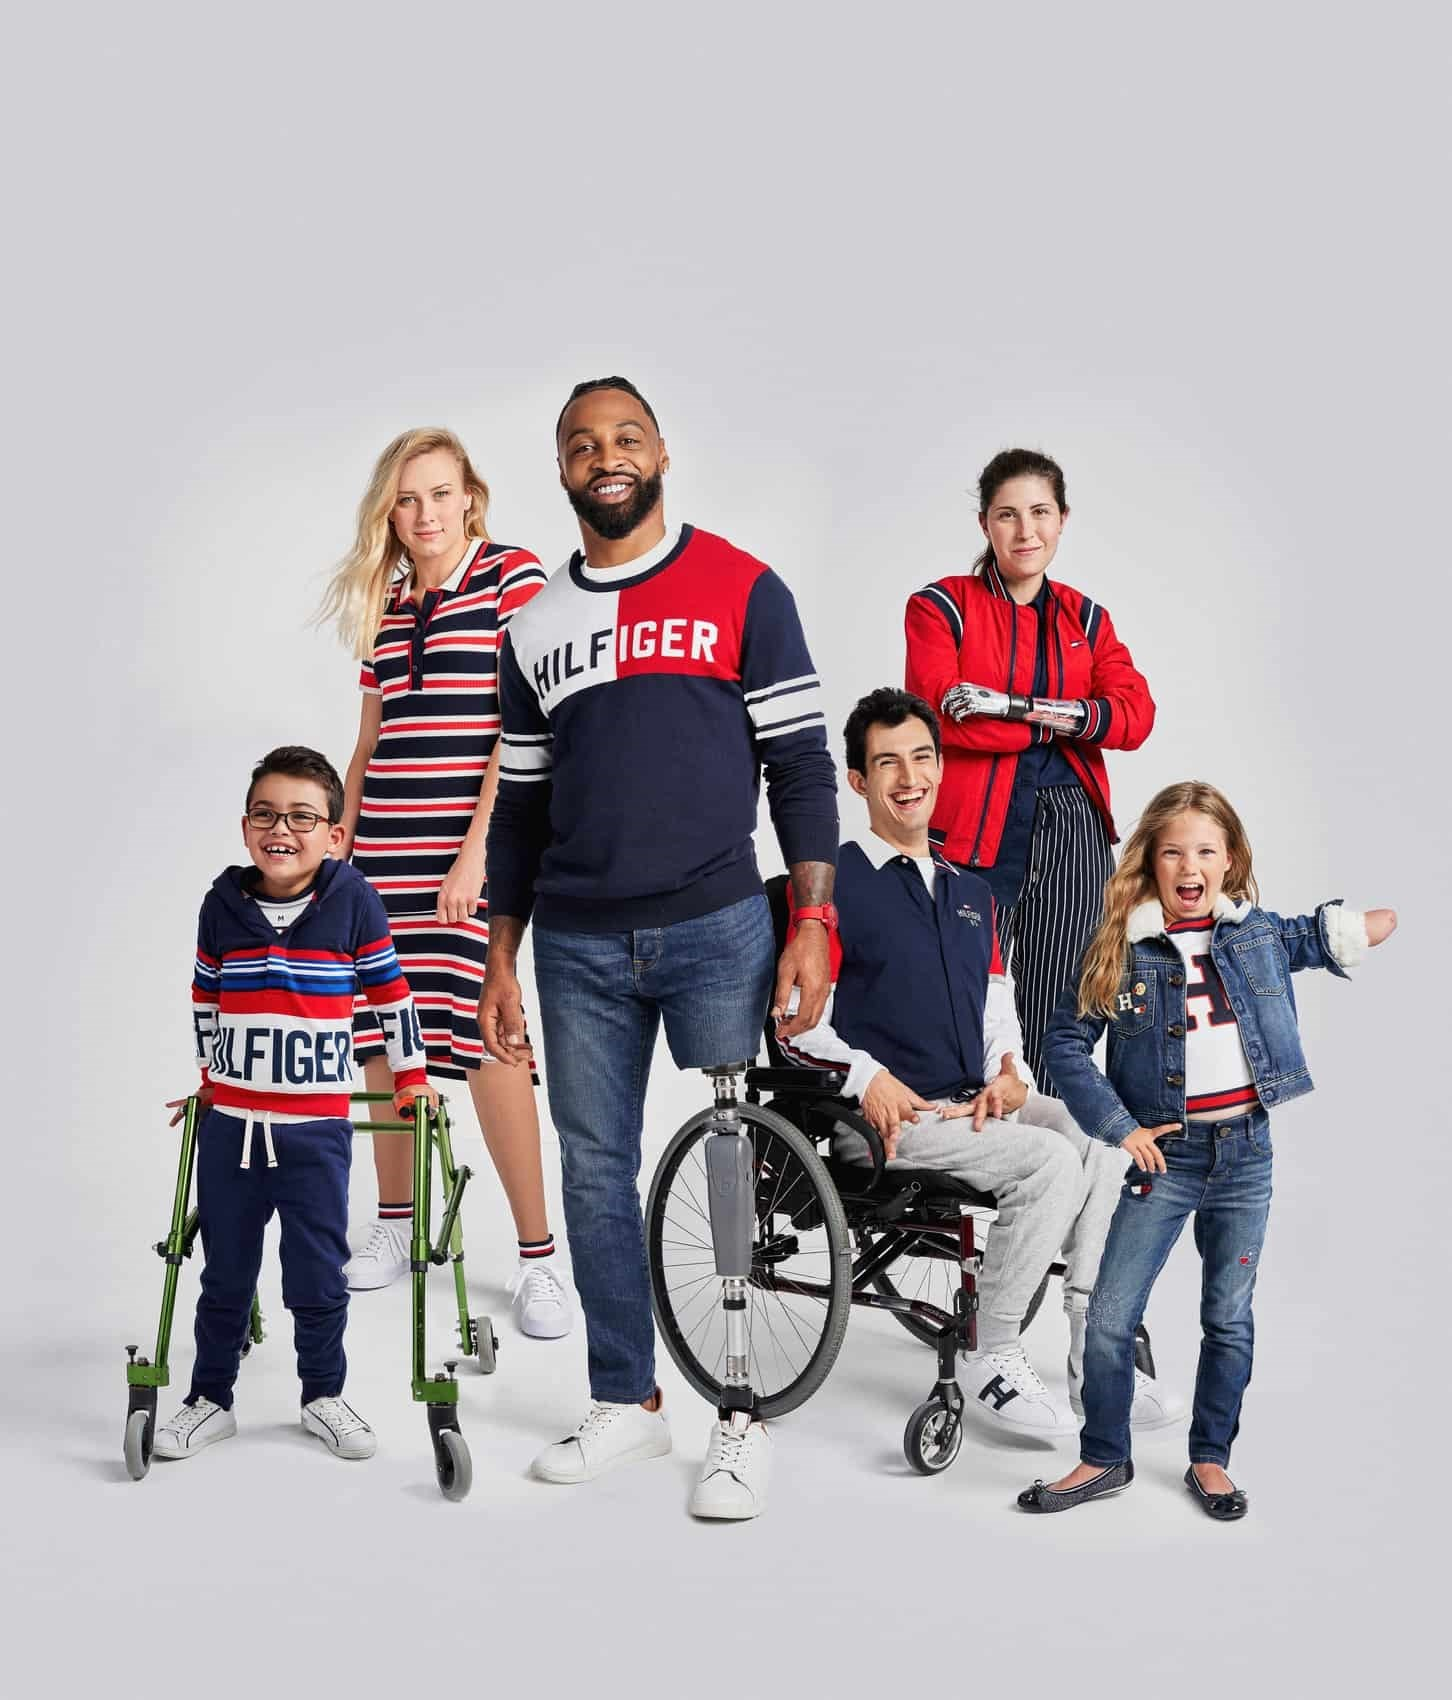 bade72f91 Tommy Hilfiger s new campaign celebrates strength in disability